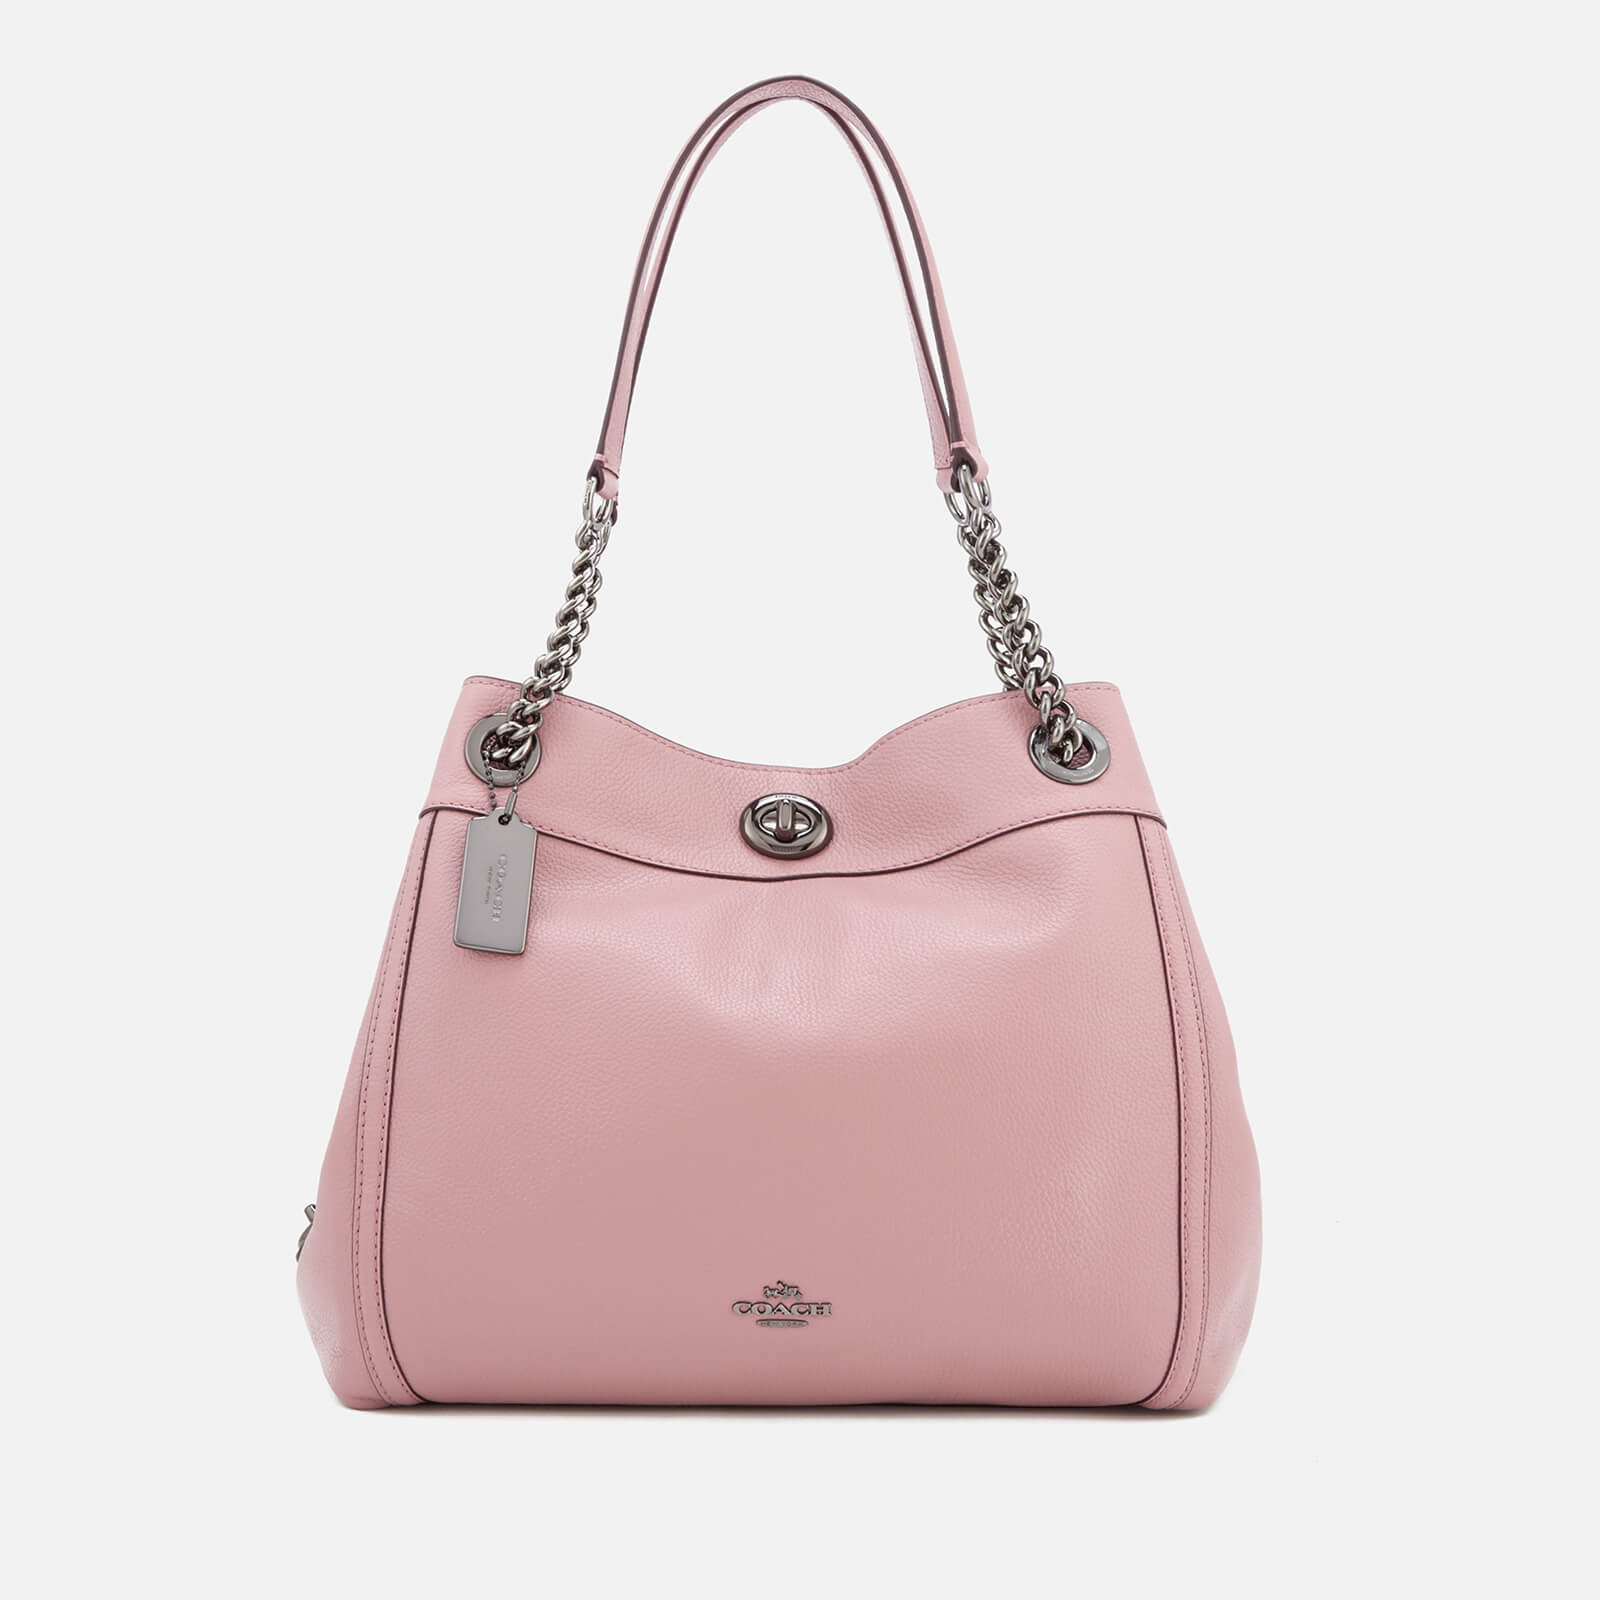 Coach Women s Turnlock Edie Shoulder Bag - Dusty Rose - Free UK Delivery  over £50 ecf5f98f501ab